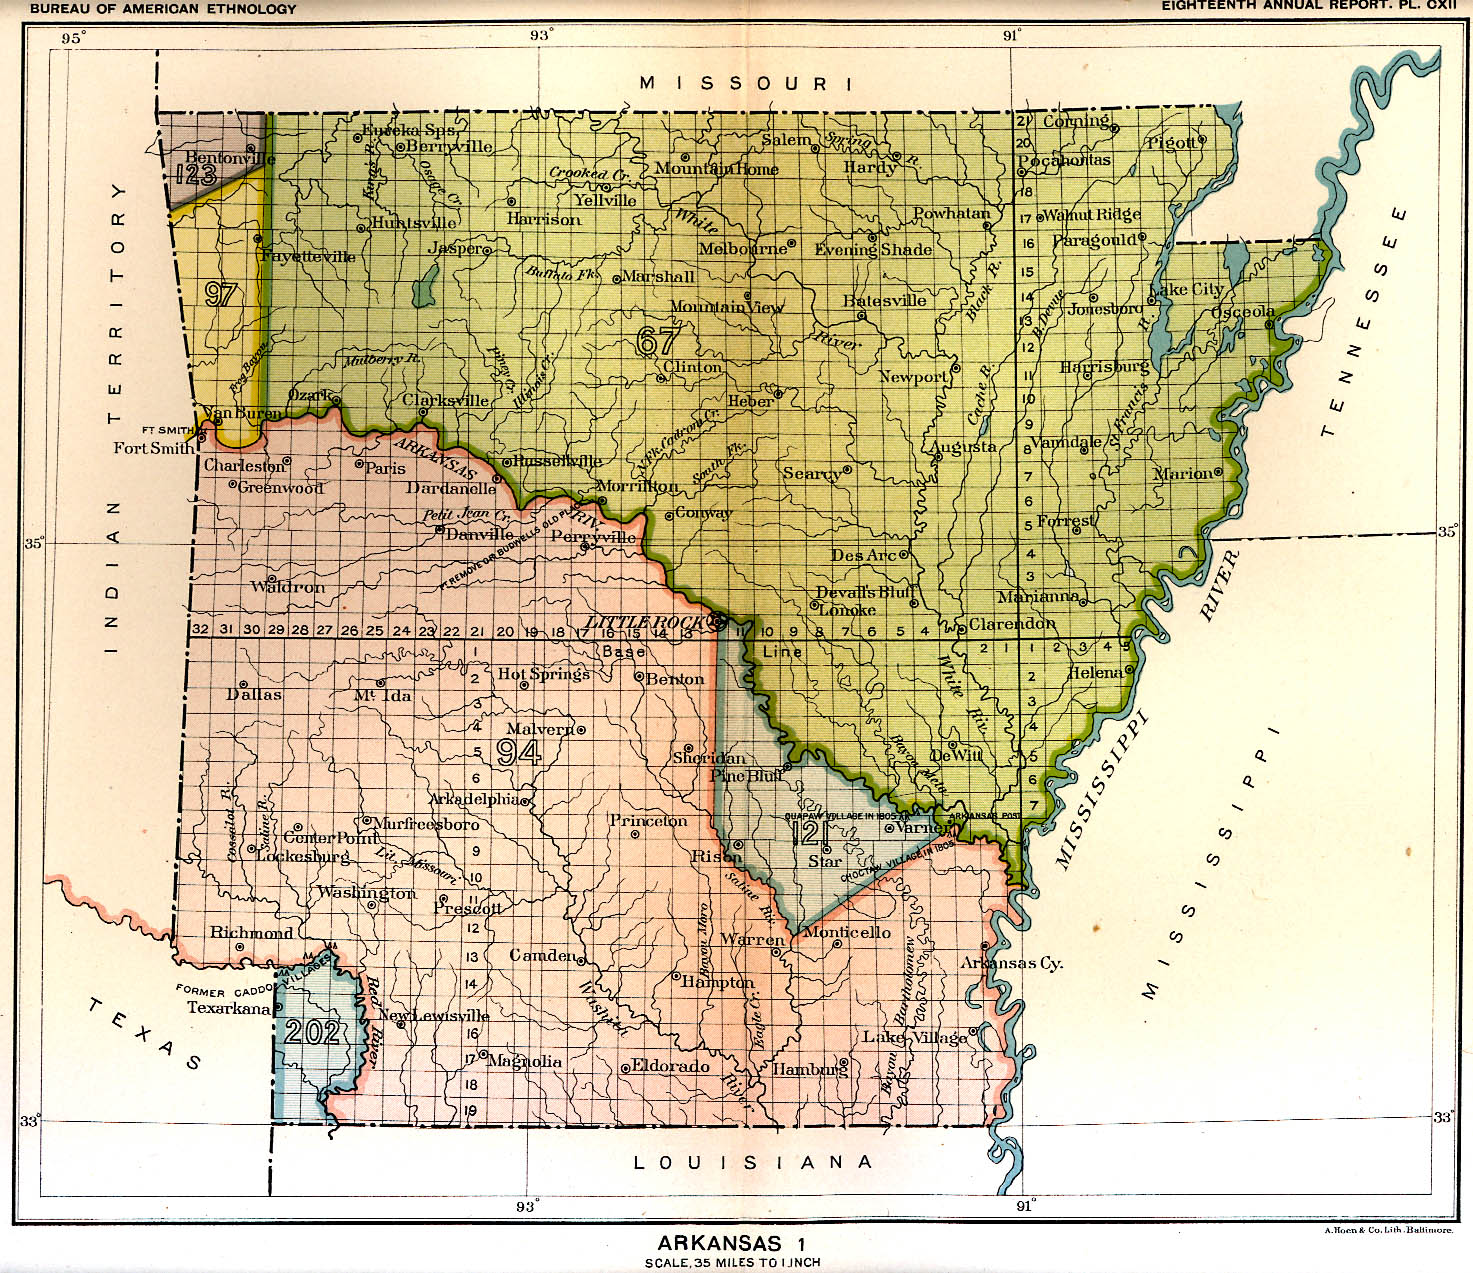 Indian Land Cessions In The U S Arkansas Map United - Arkansas on a us map